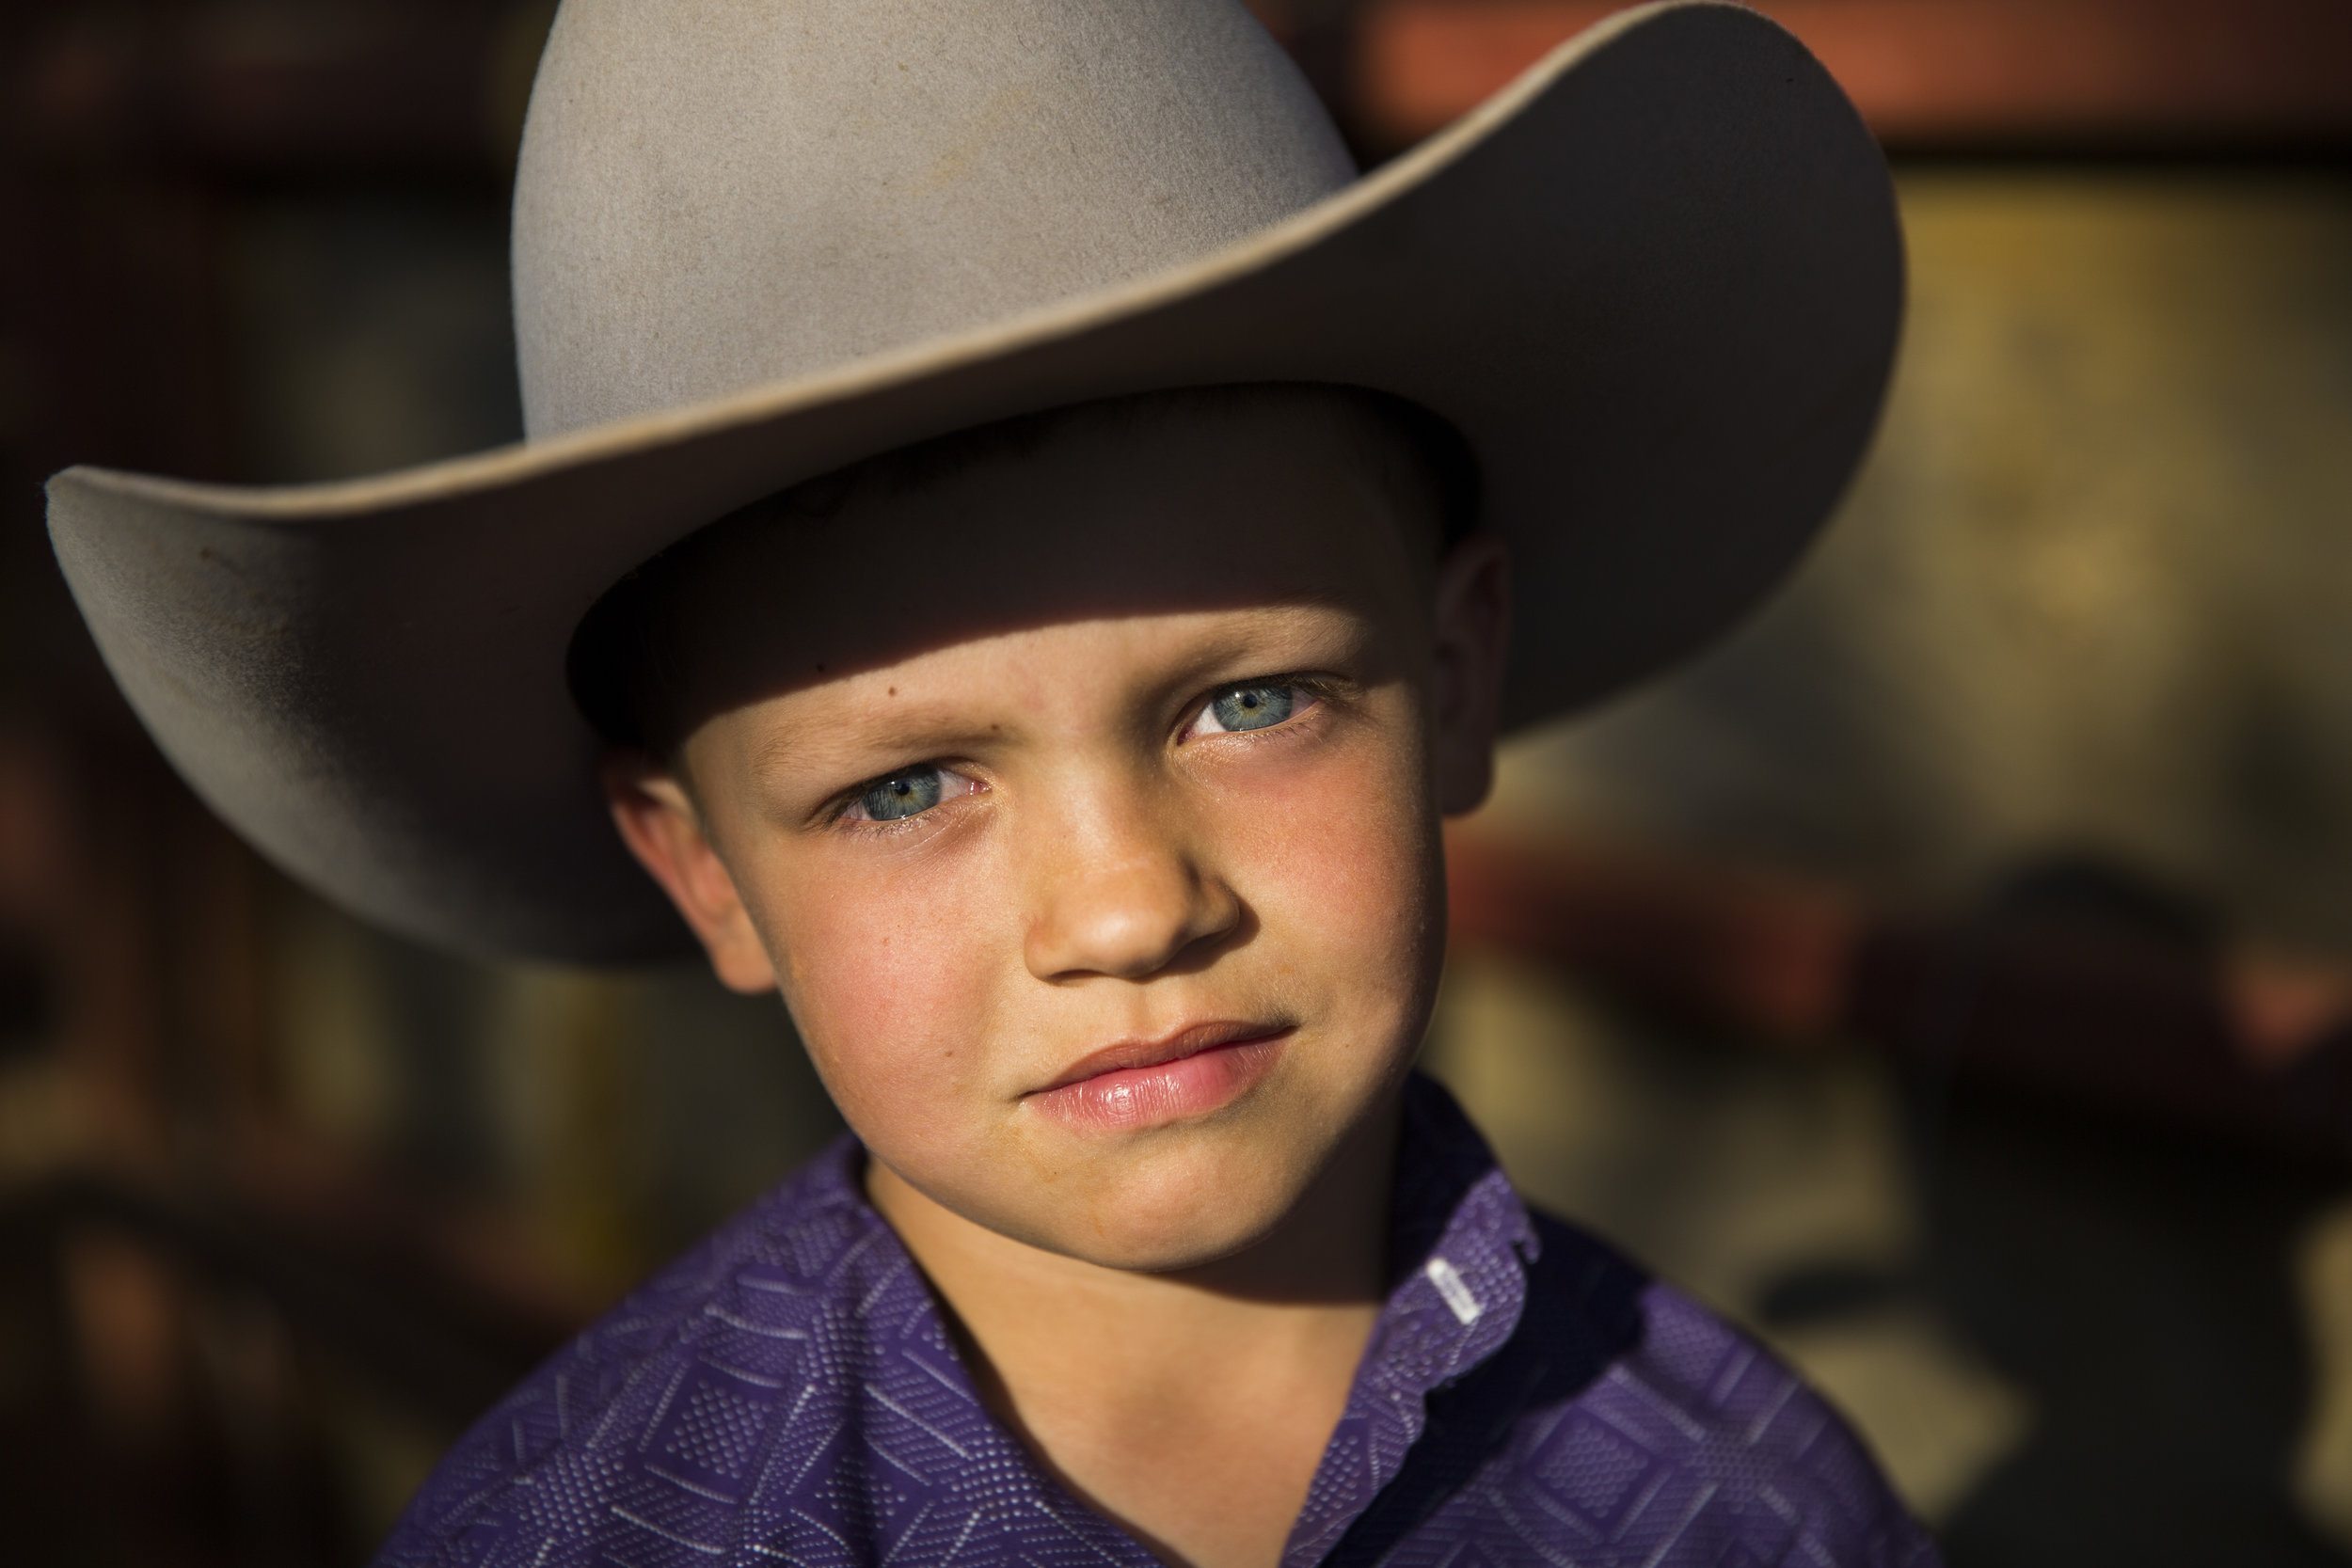 Brace Miller, 6,at the Junior Cypress Memorial Rodeo at the Junior Cypress Rodeo Arena in Clewiston, Fla. on Saturday, March 17, 2018.